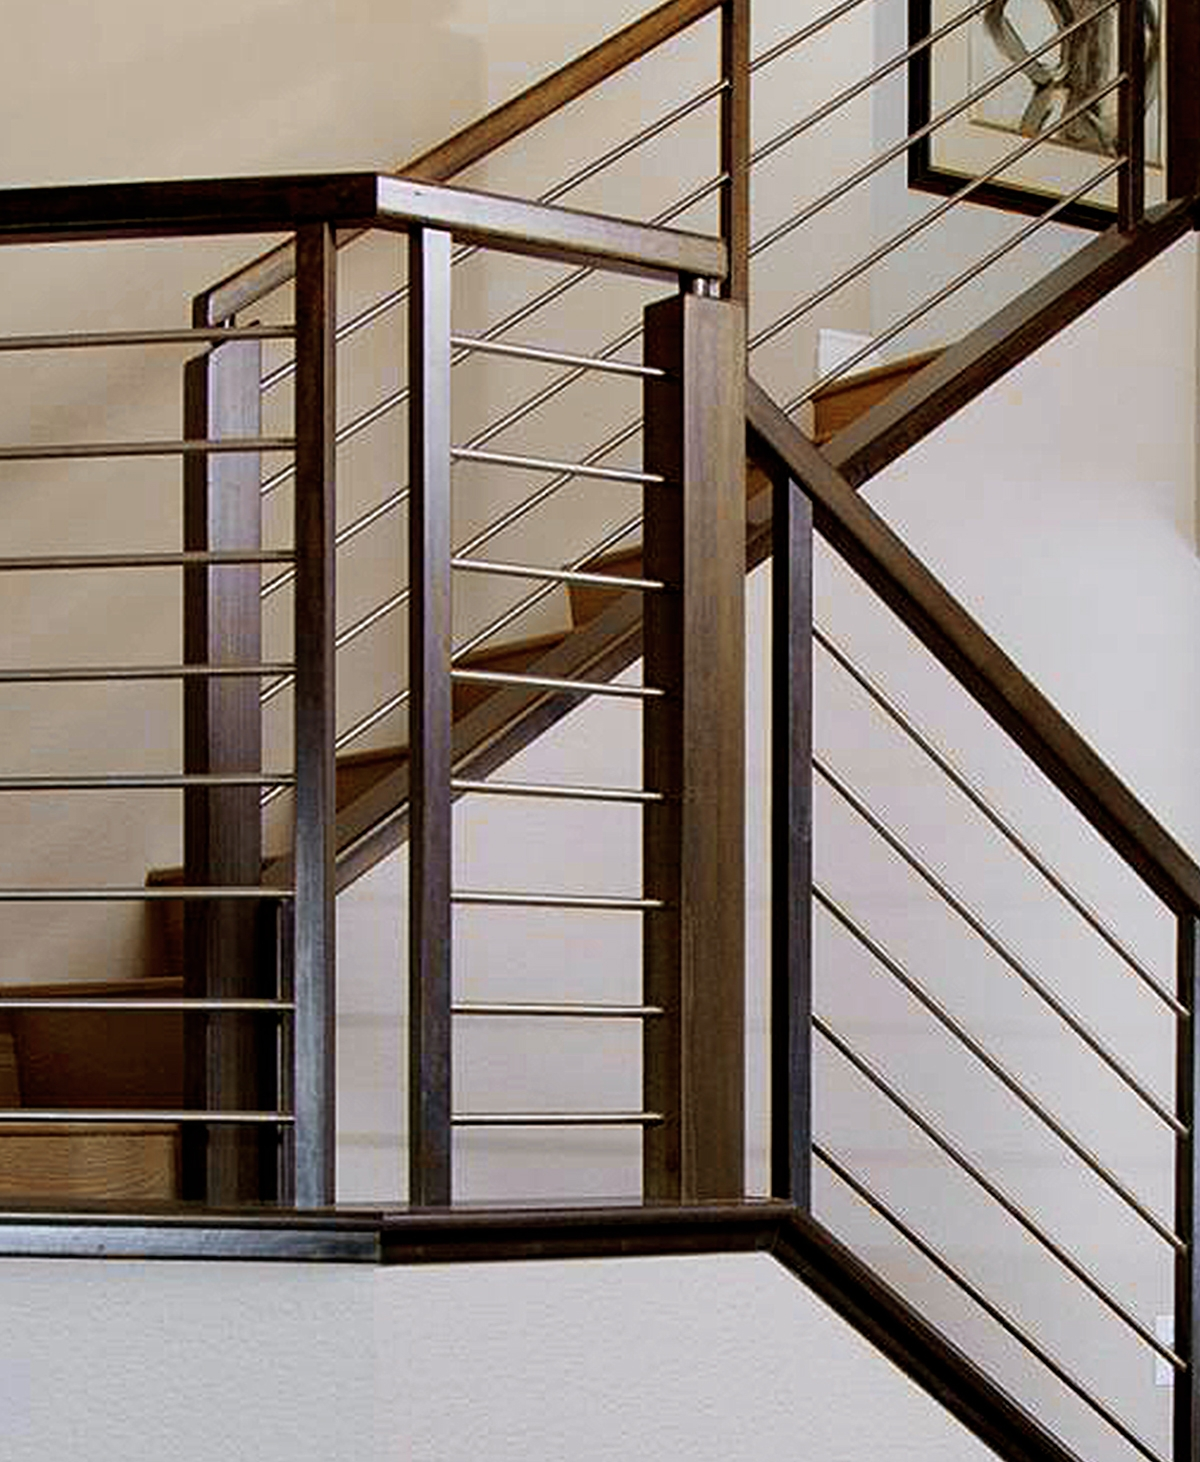 Nevada Stairs Photo Gallery | Modern Horizontal Stair Railing | Really Thin | Interior | Cast Iron | Cable | Elegant